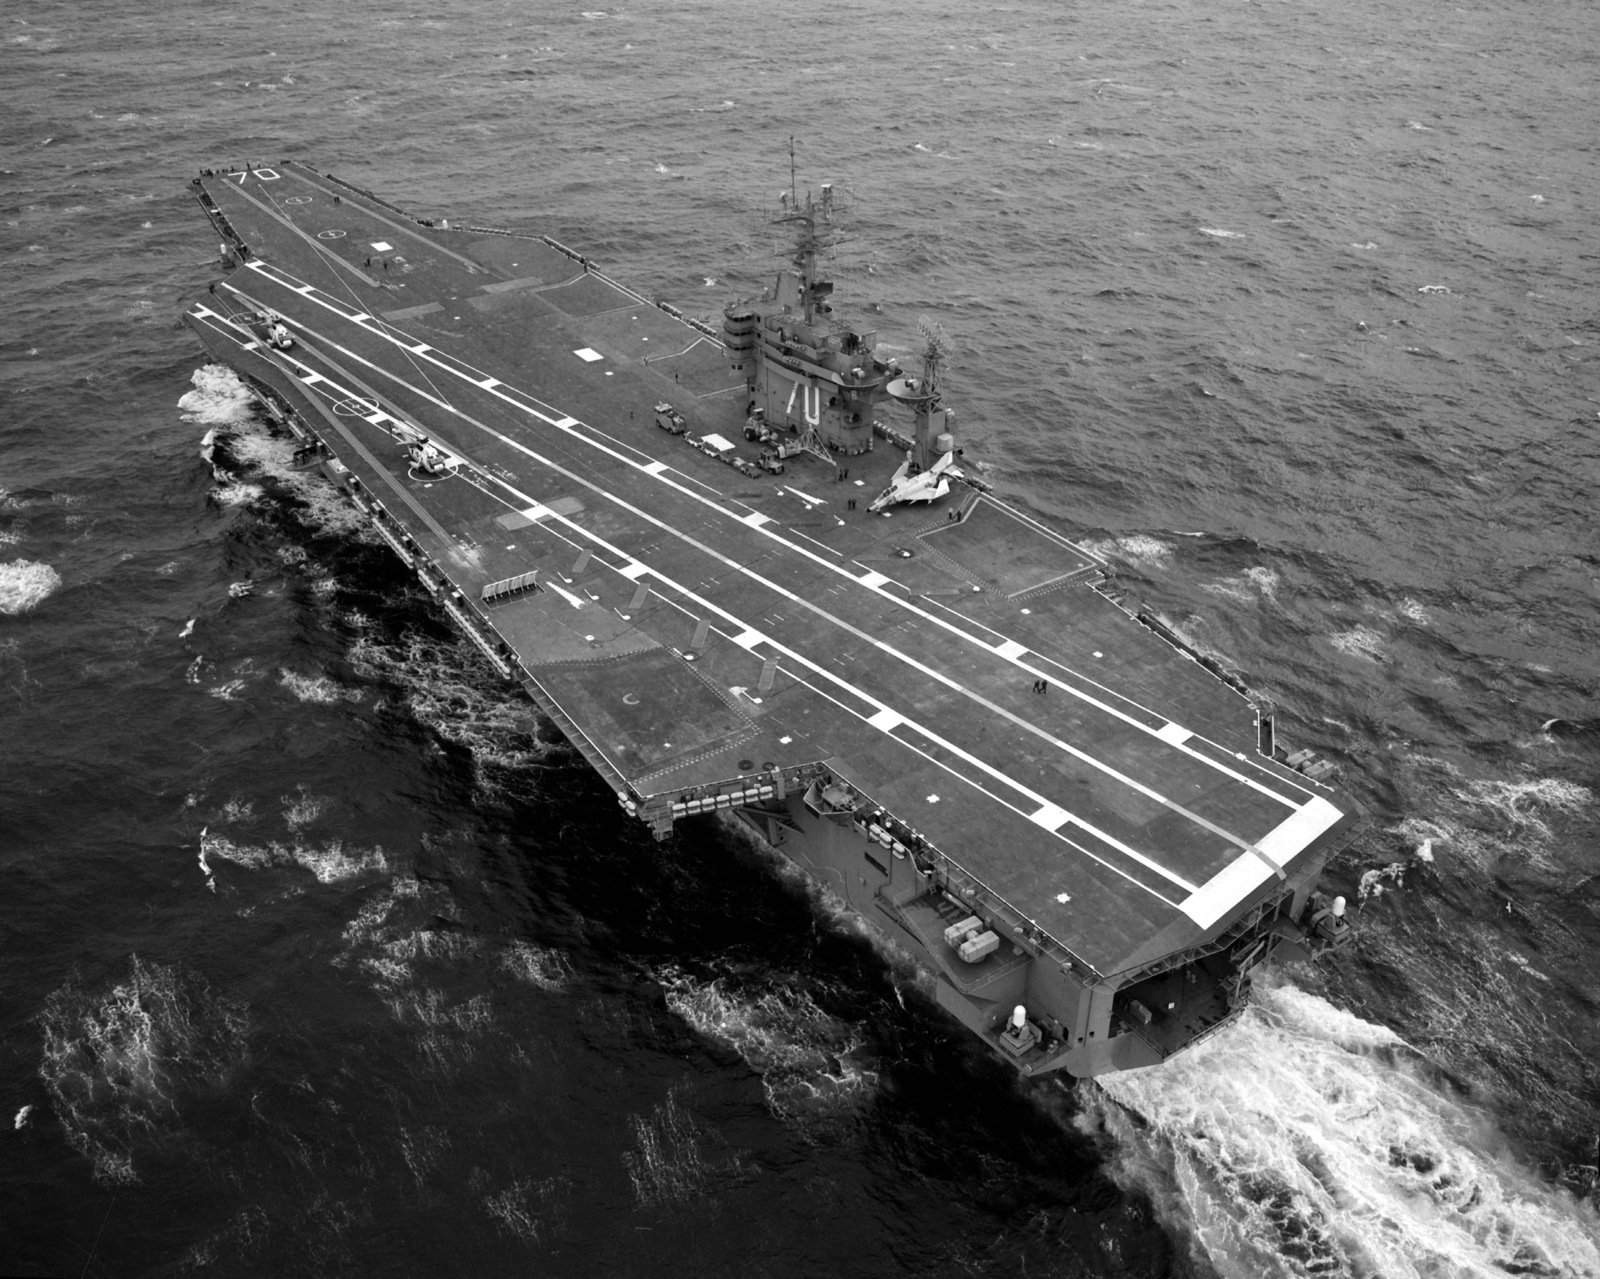 A port quarter view of the nuclear-powered aircraft carrier USS CARL VINSON (CVN-70) underway